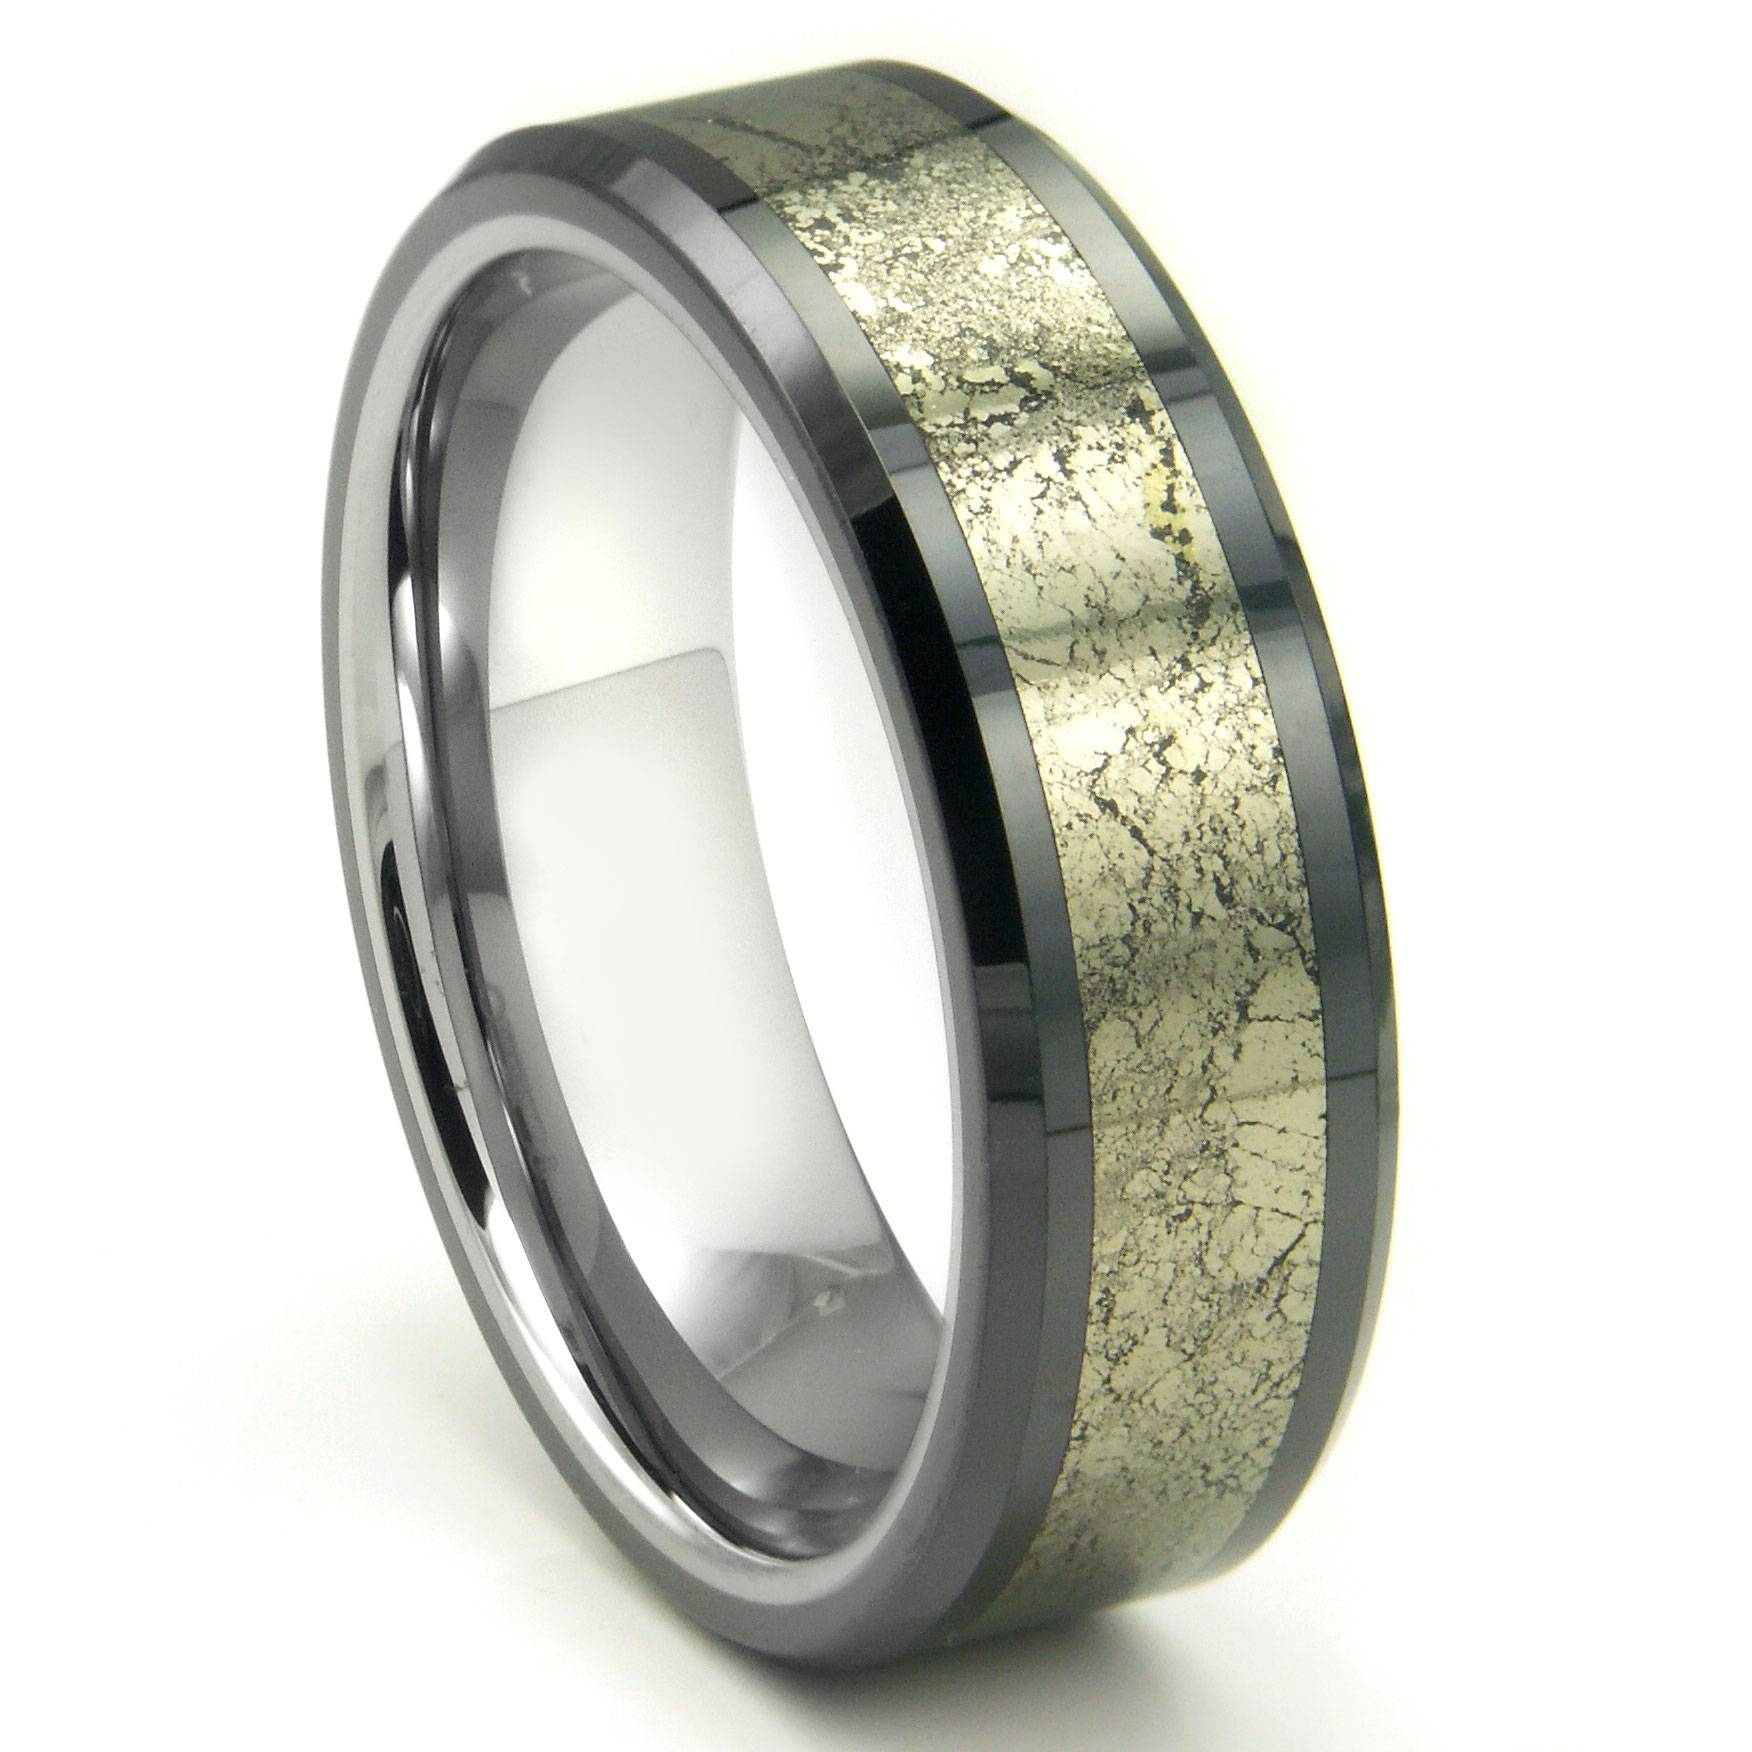 Tungsten Carbide Golden Meteorite Inlay Wedding Band Ring Throughout Most Popular Mes Wedding Bands (View 10 of 15)